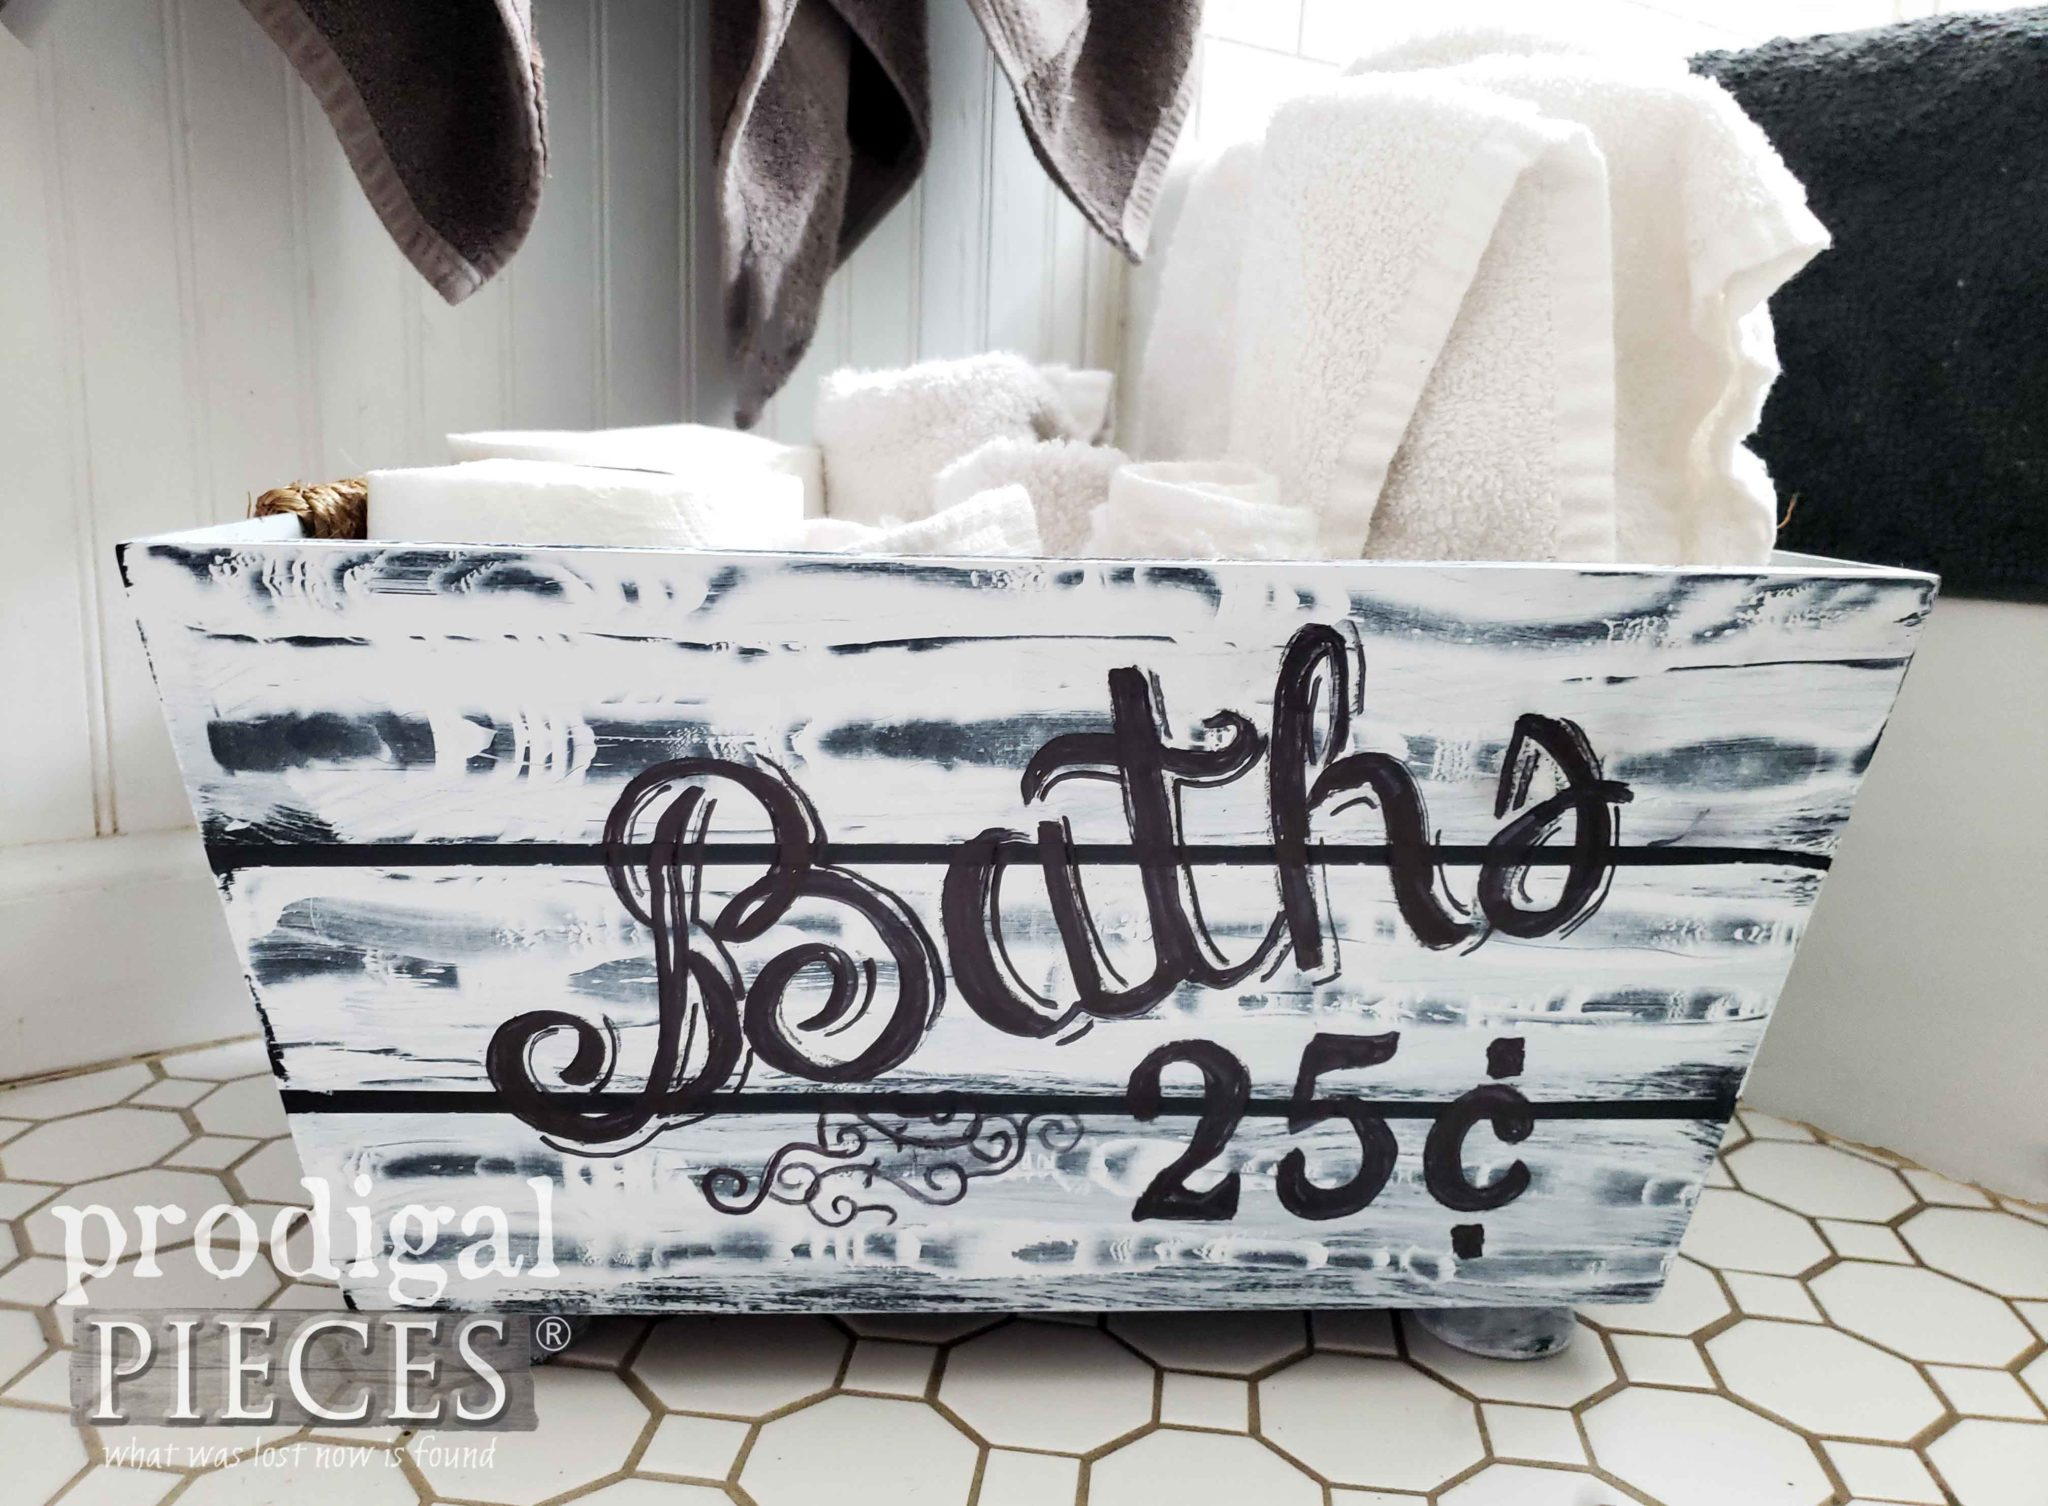 Vintage Style Bathroom Storage for Farmhouse Decor | Video tutorial by Larissa of Prodigal Pieces | prodigalpieces.com #prodigalpieces #diy #farmhouse #bathroom #home #shopping #vintage #homedecor #homedecorideas